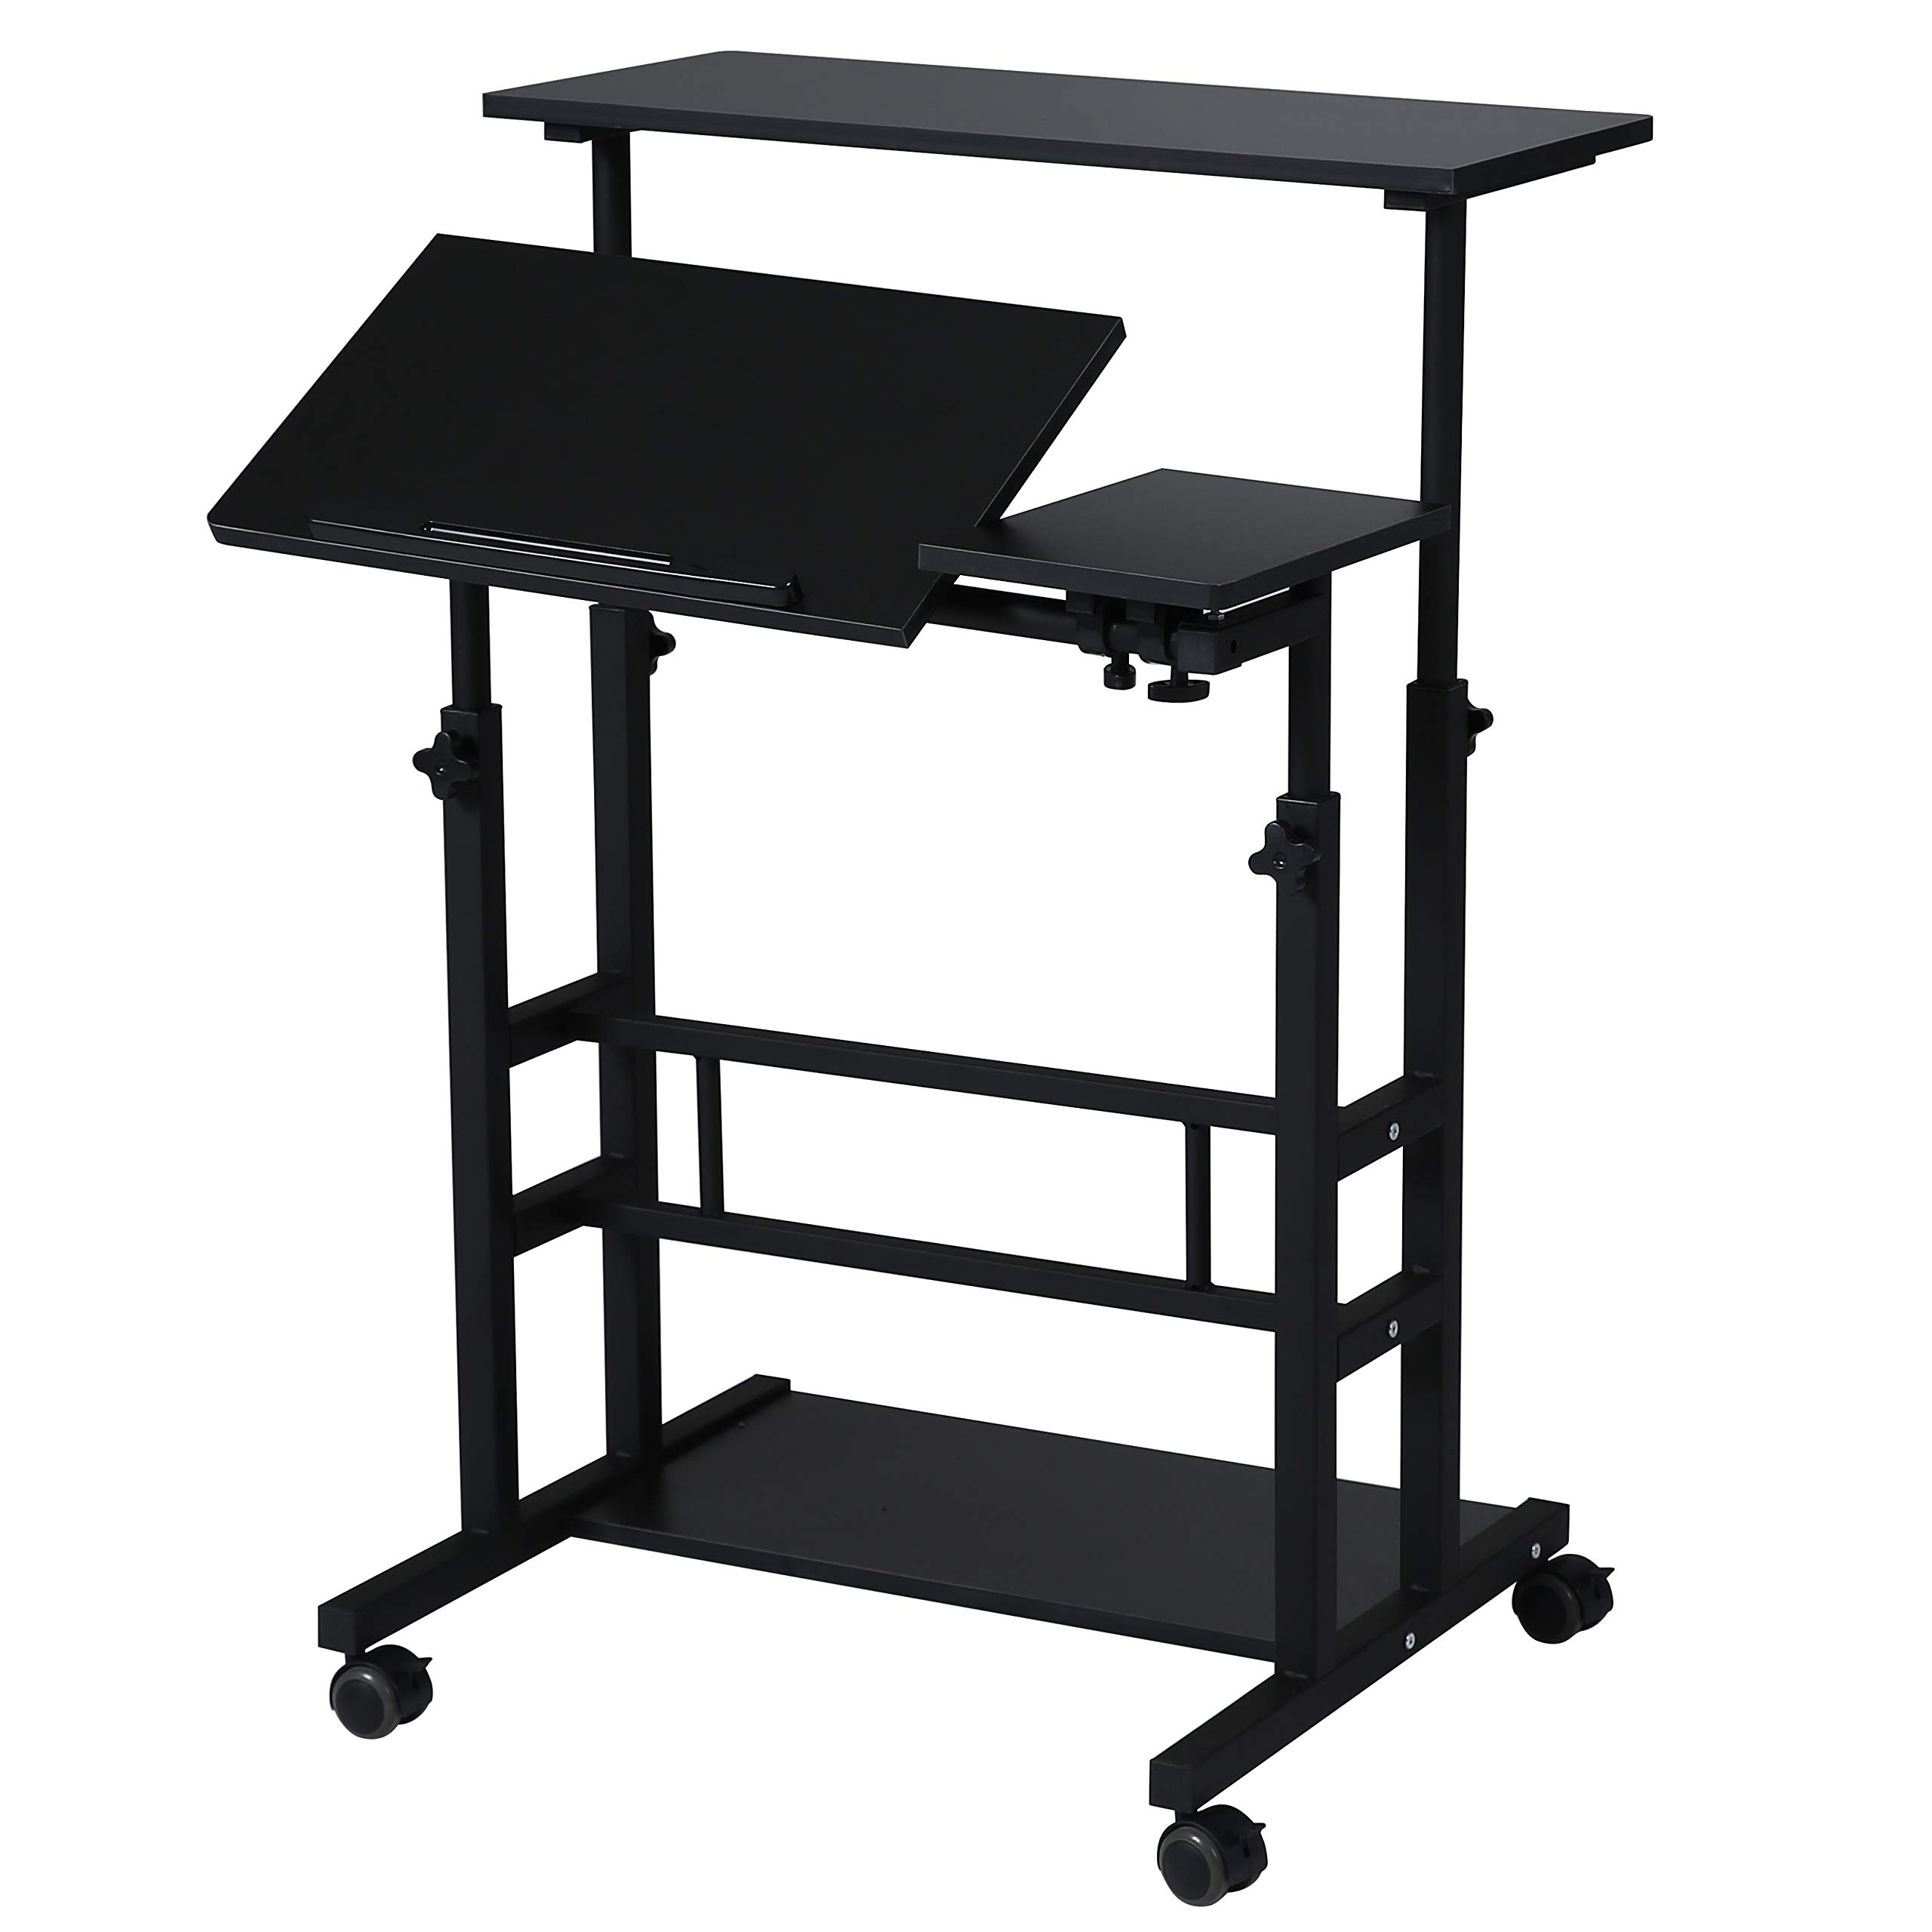 UNICOO- Height Adjustable Sit Stand Workstation, Mobile Standing Desk, Rolling Presentation Cart, Stand Up Computer Desk with Dual Surface for Home Office (U101-Black) by UNICOO